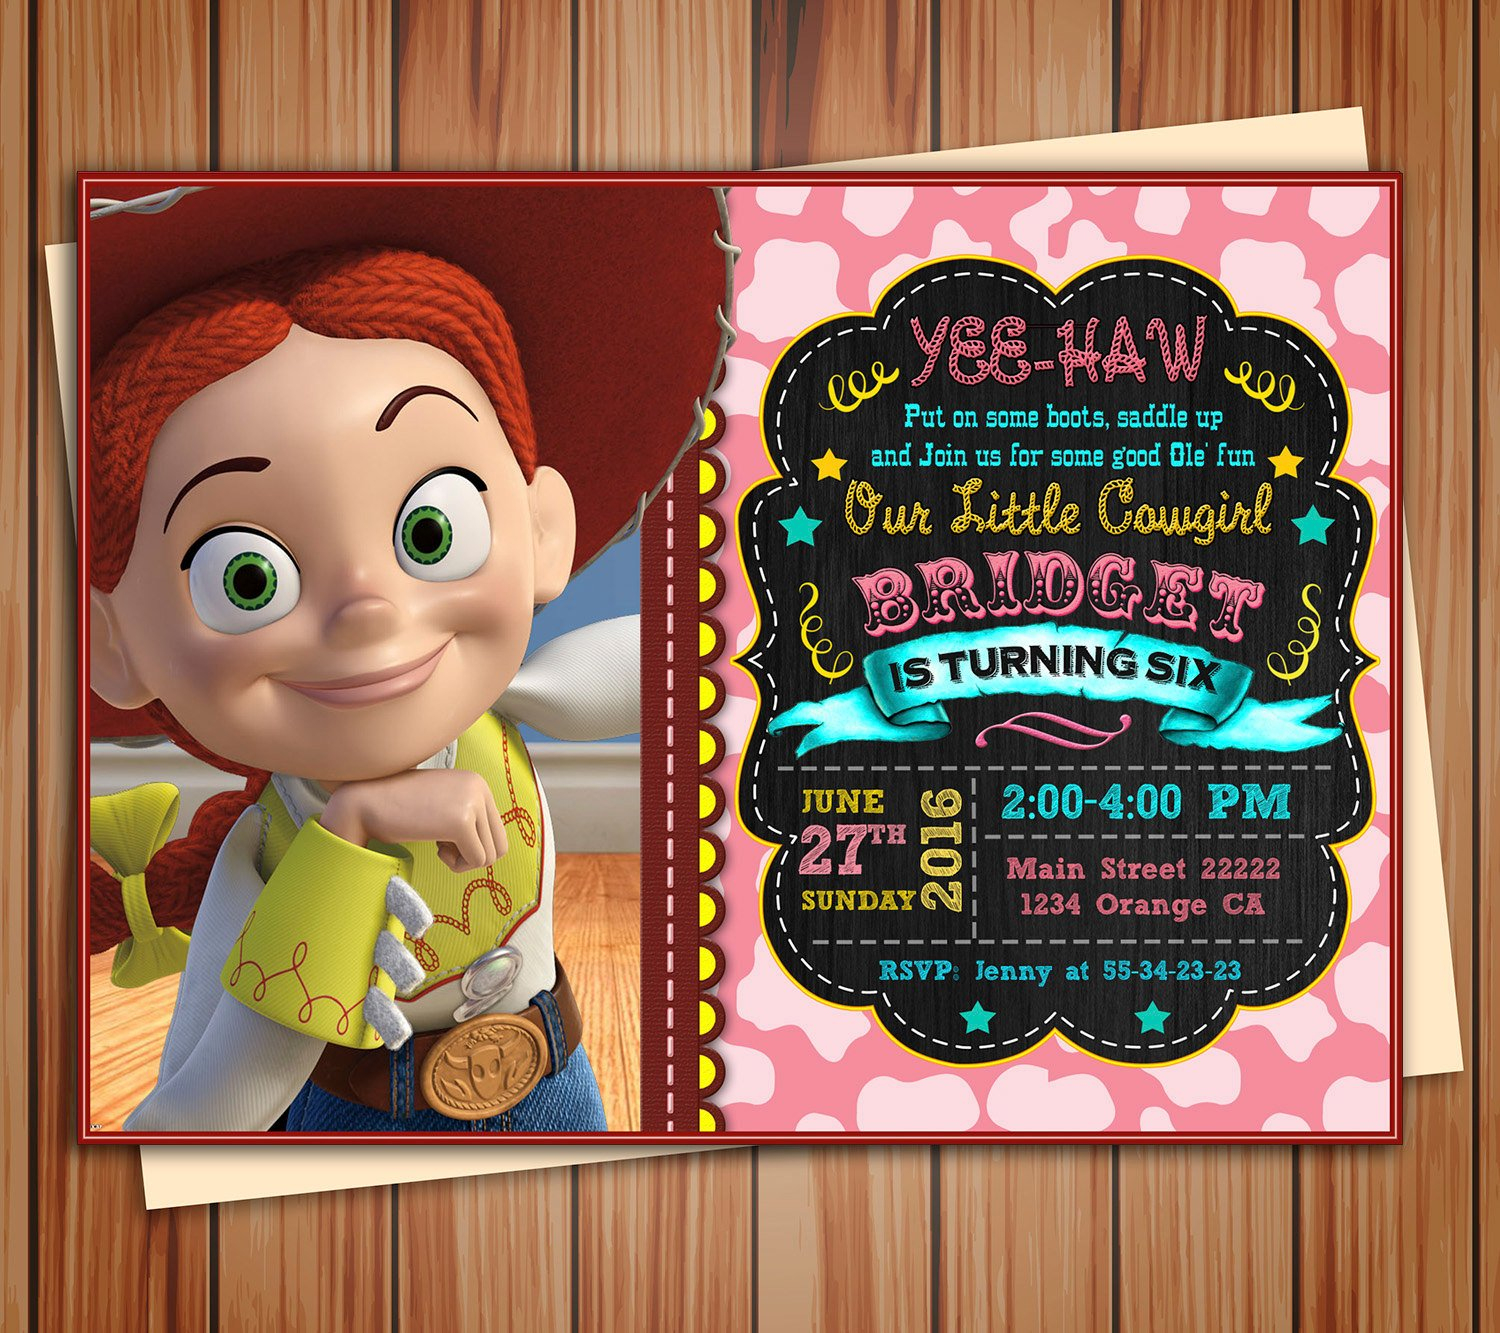 Jessie Cowgirl Toy Story Birthday Photo Invitation Chalkboard | Etsy - Toy Story Birthday Card Printable Free